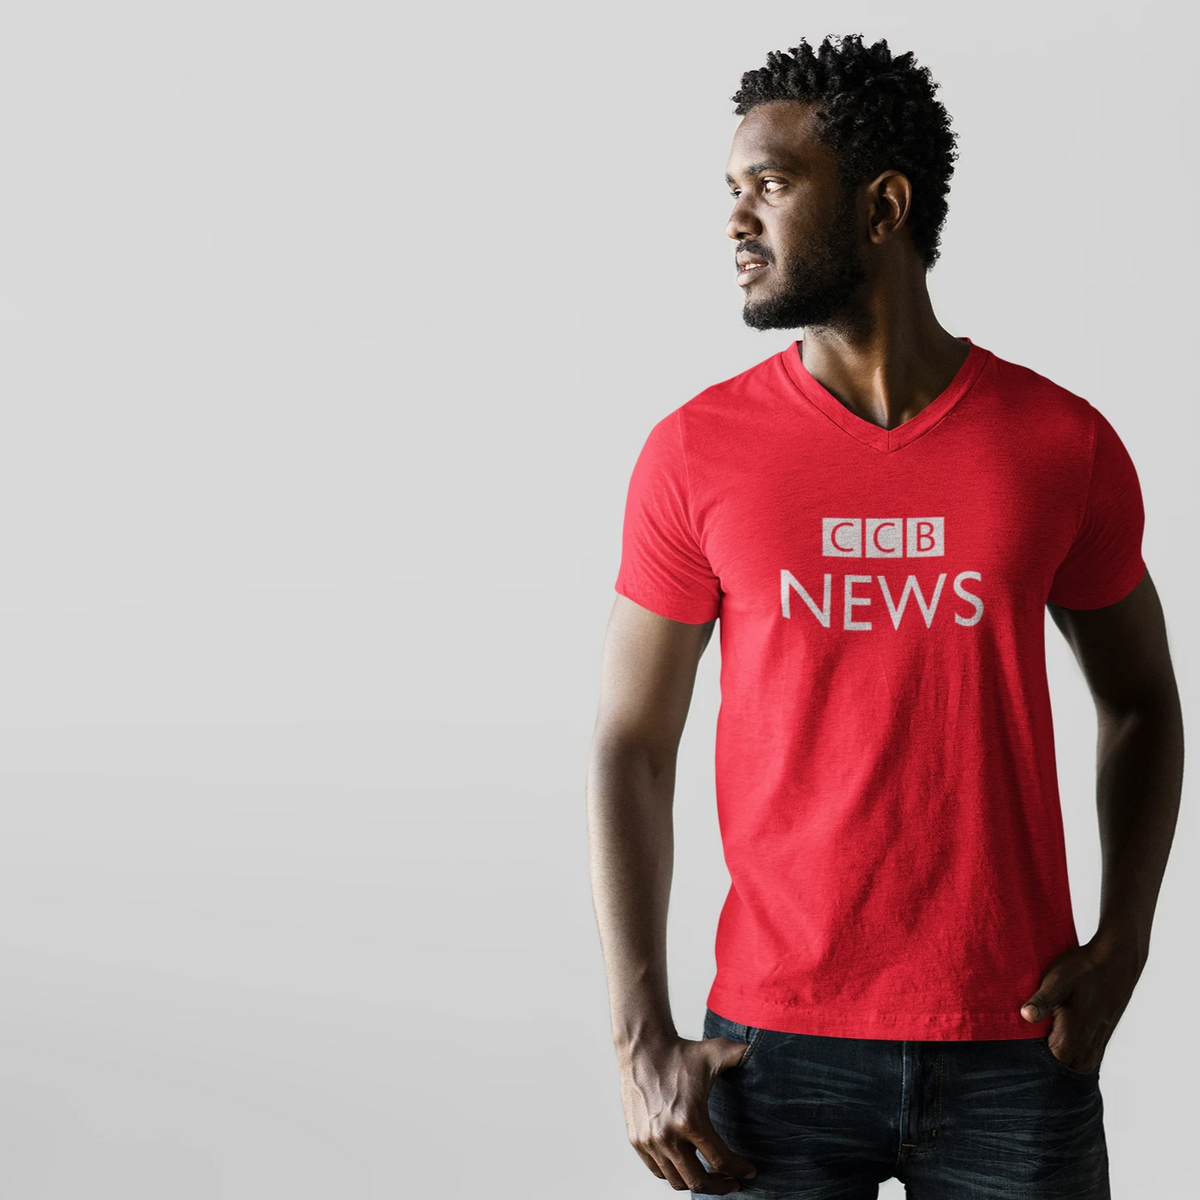 Singapore tshirt CCB News by Kaobeiking, Singapore tshirt designer